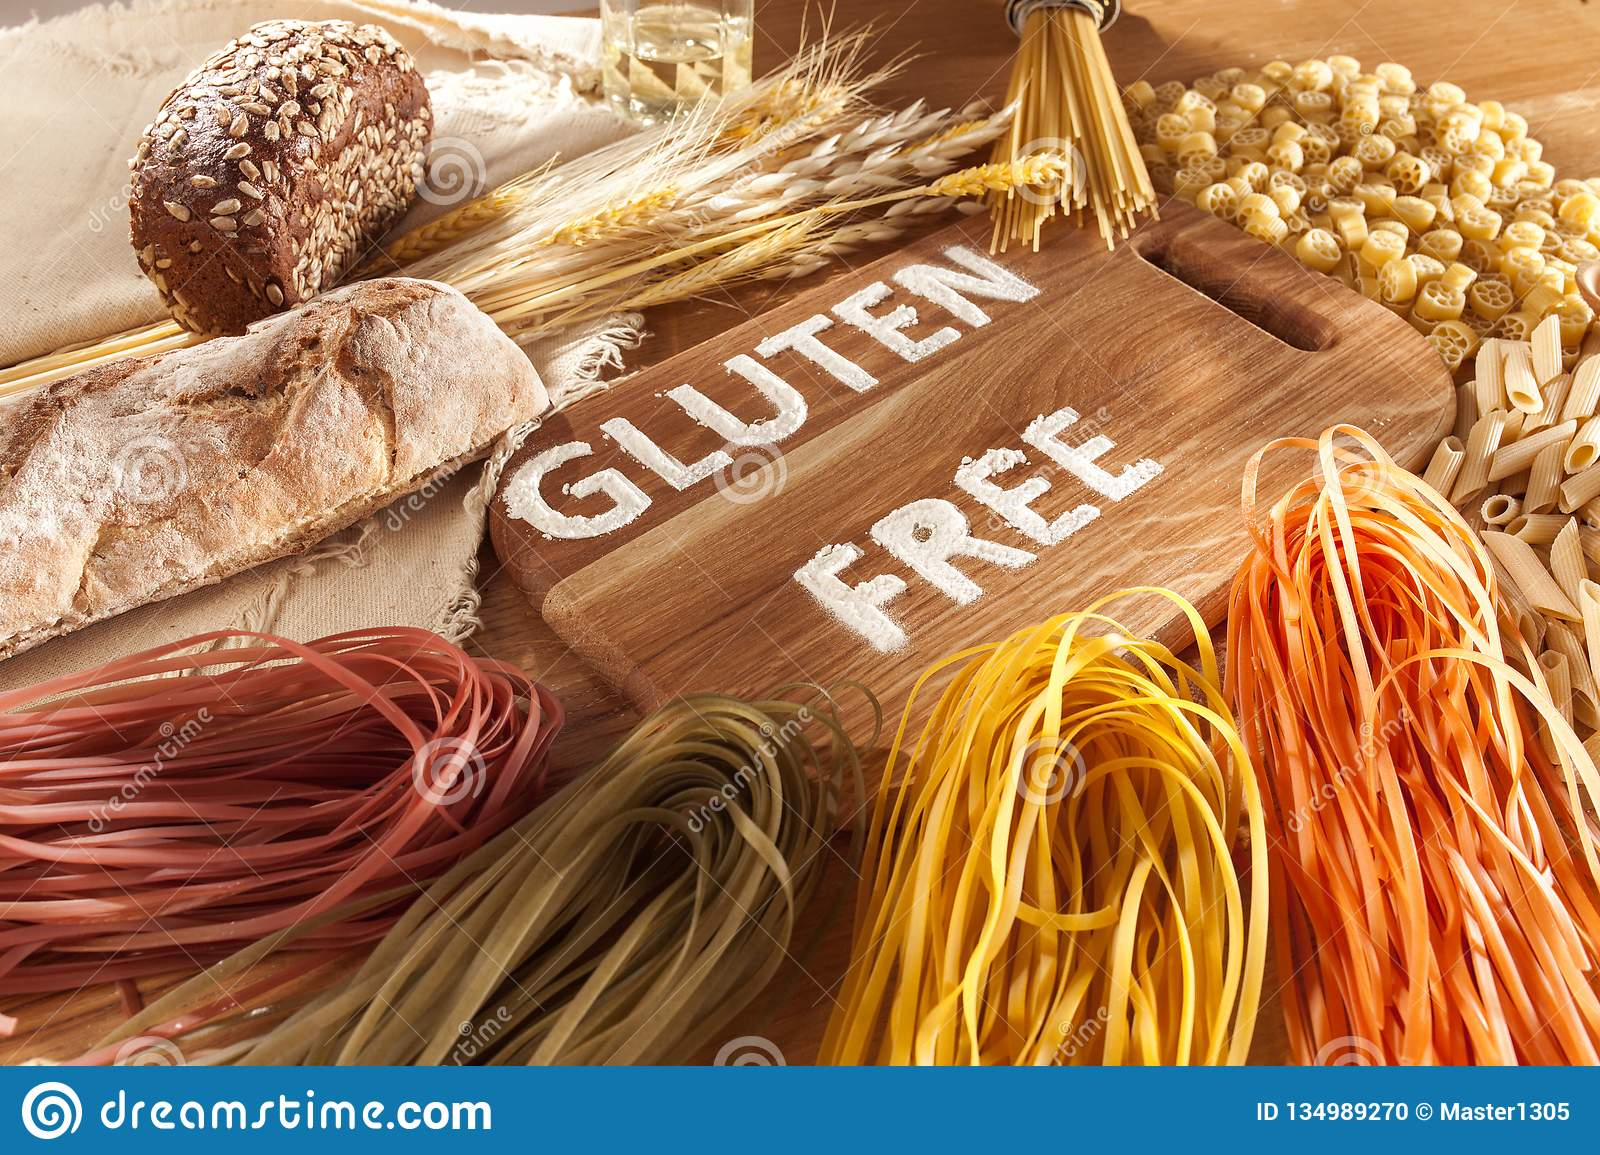 Gluten Free Food  Various Pasta, Bread And Snacks On Wooden